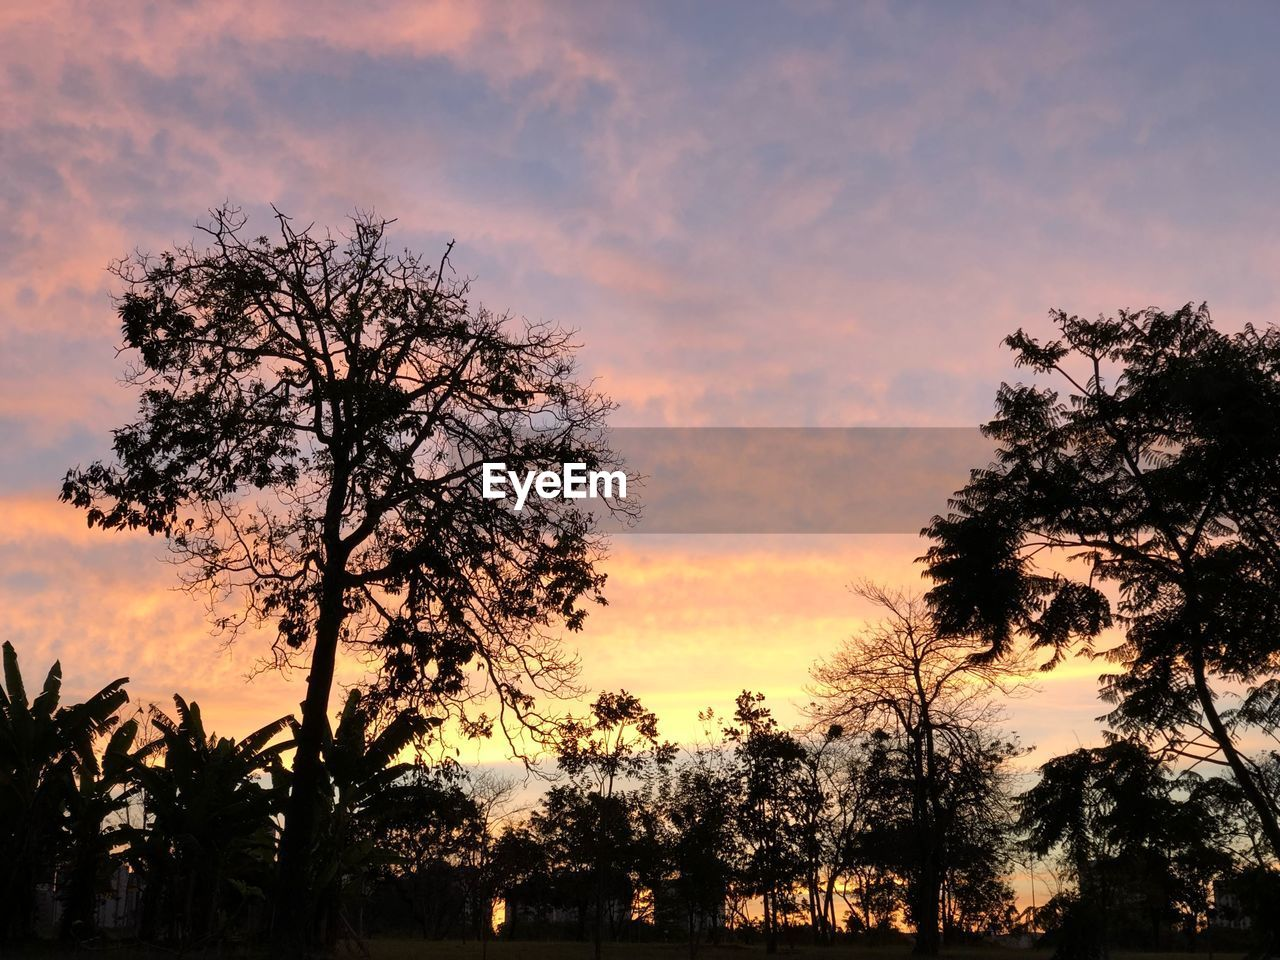 tree, sunset, sky, plant, silhouette, beauty in nature, tranquility, orange color, scenics - nature, cloud - sky, tranquil scene, growth, no people, nature, idyllic, non-urban scene, outdoors, low angle view, branch, dramatic sky, romantic sky